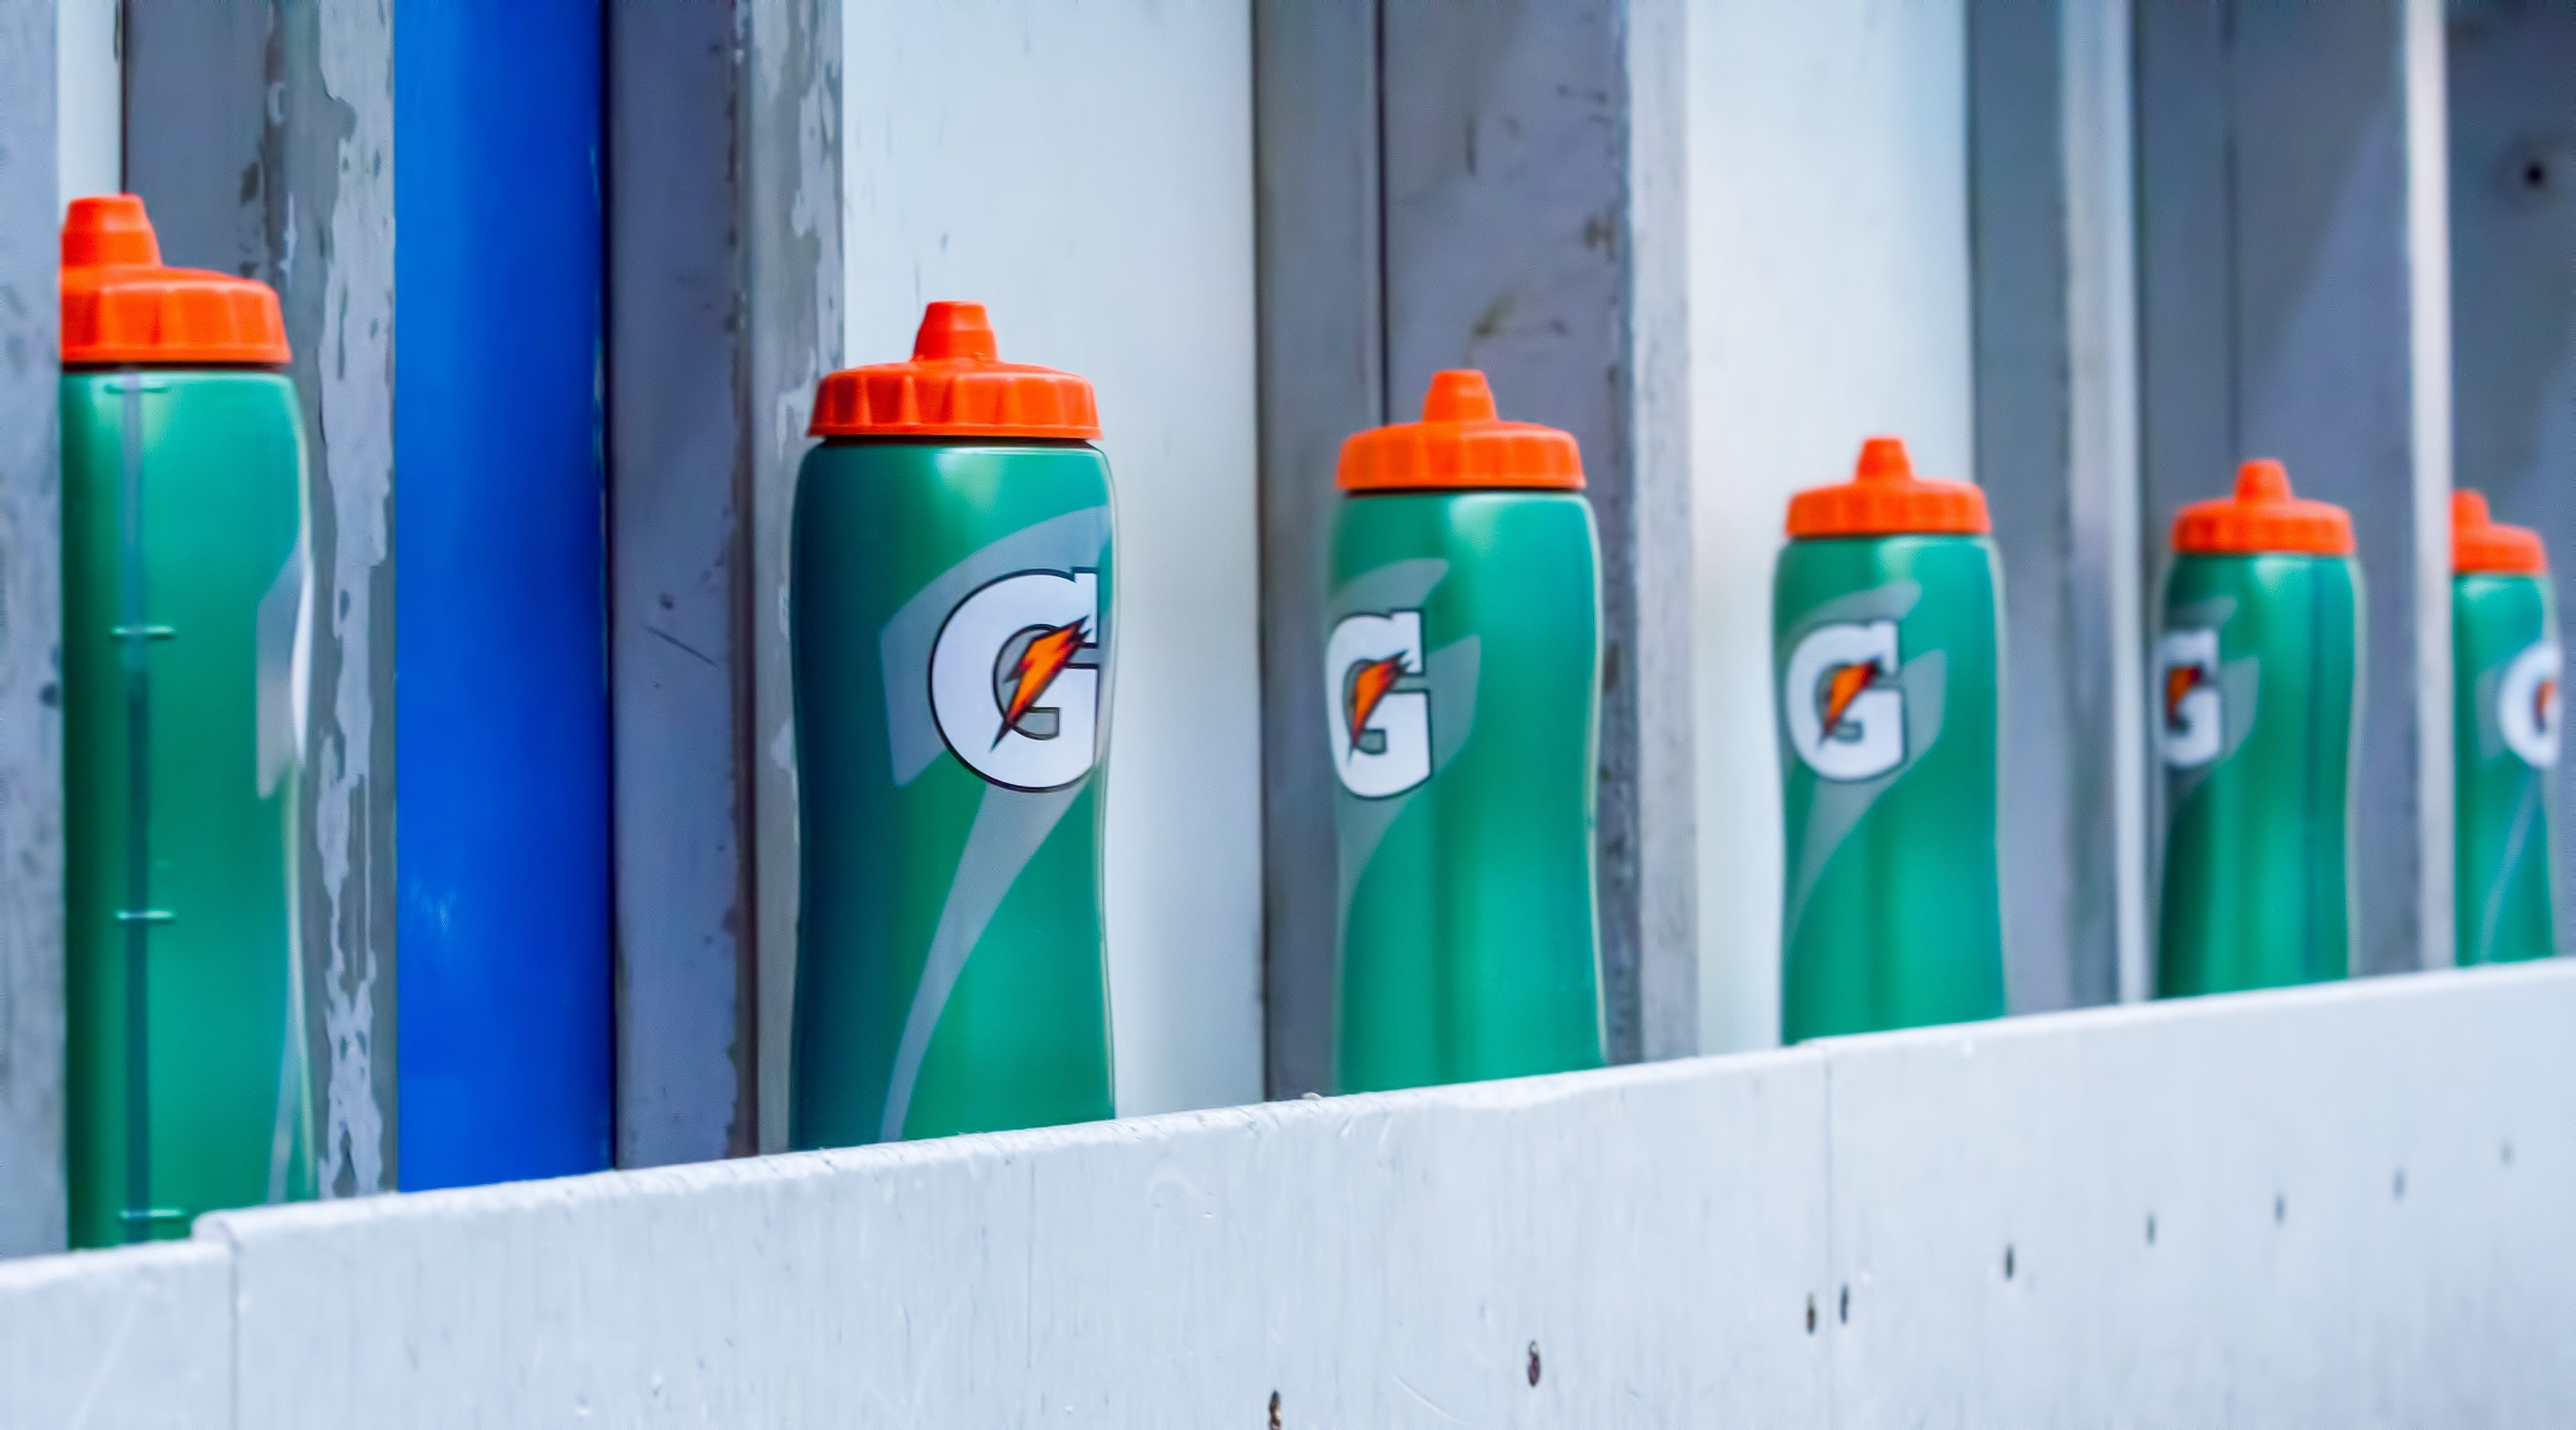 Social listening helps pepsico's gatorade